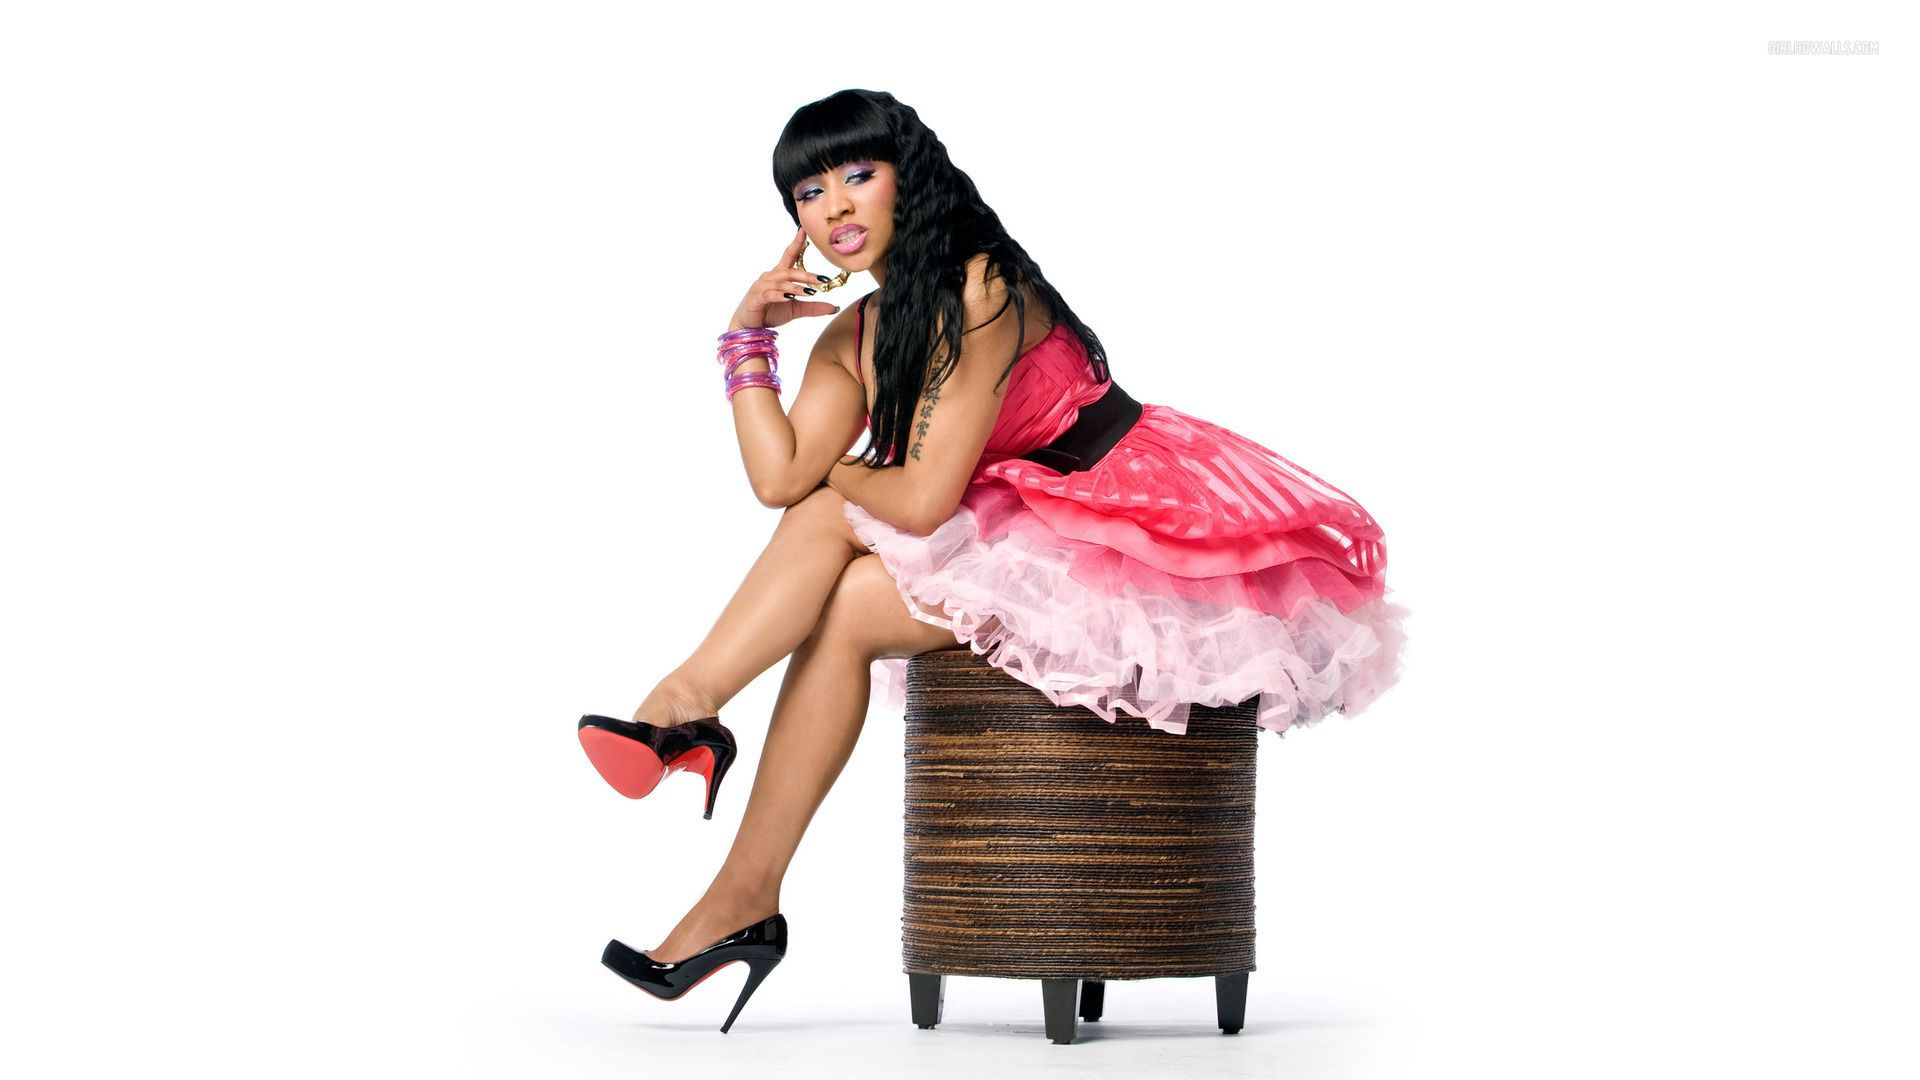 1920x1080 Nicki Minaj HD Wallpaper 1920×1080 Free Nicki Minaj Wallpapers ...